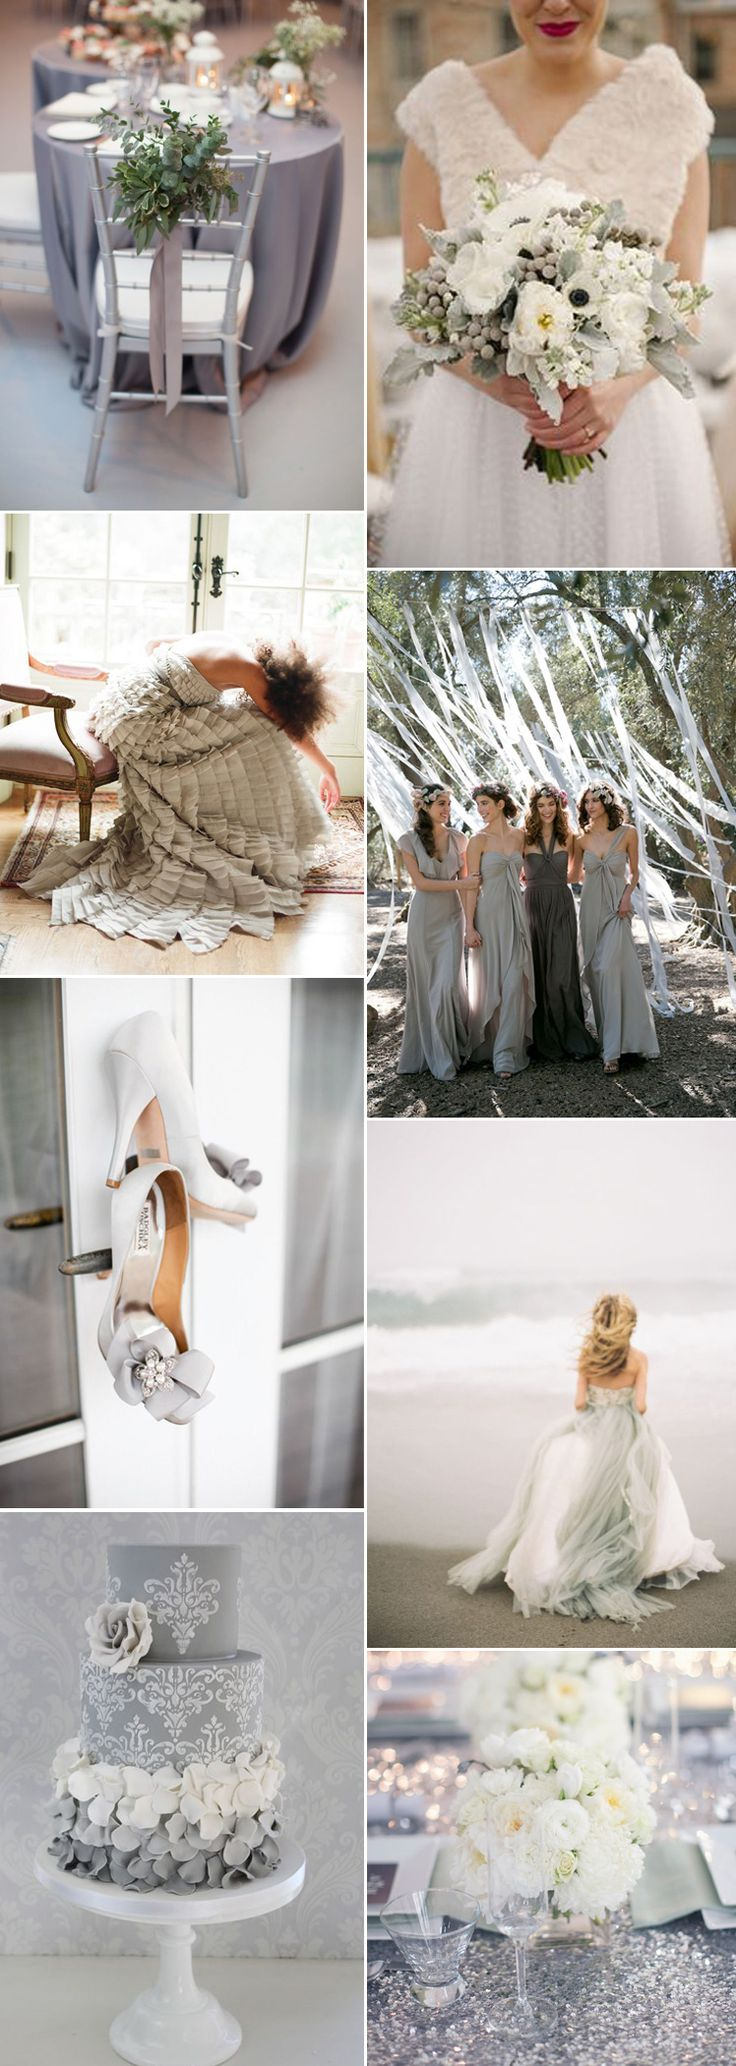 Magnificent Wedding Themes For May Image Collection - Wedding Dress ...